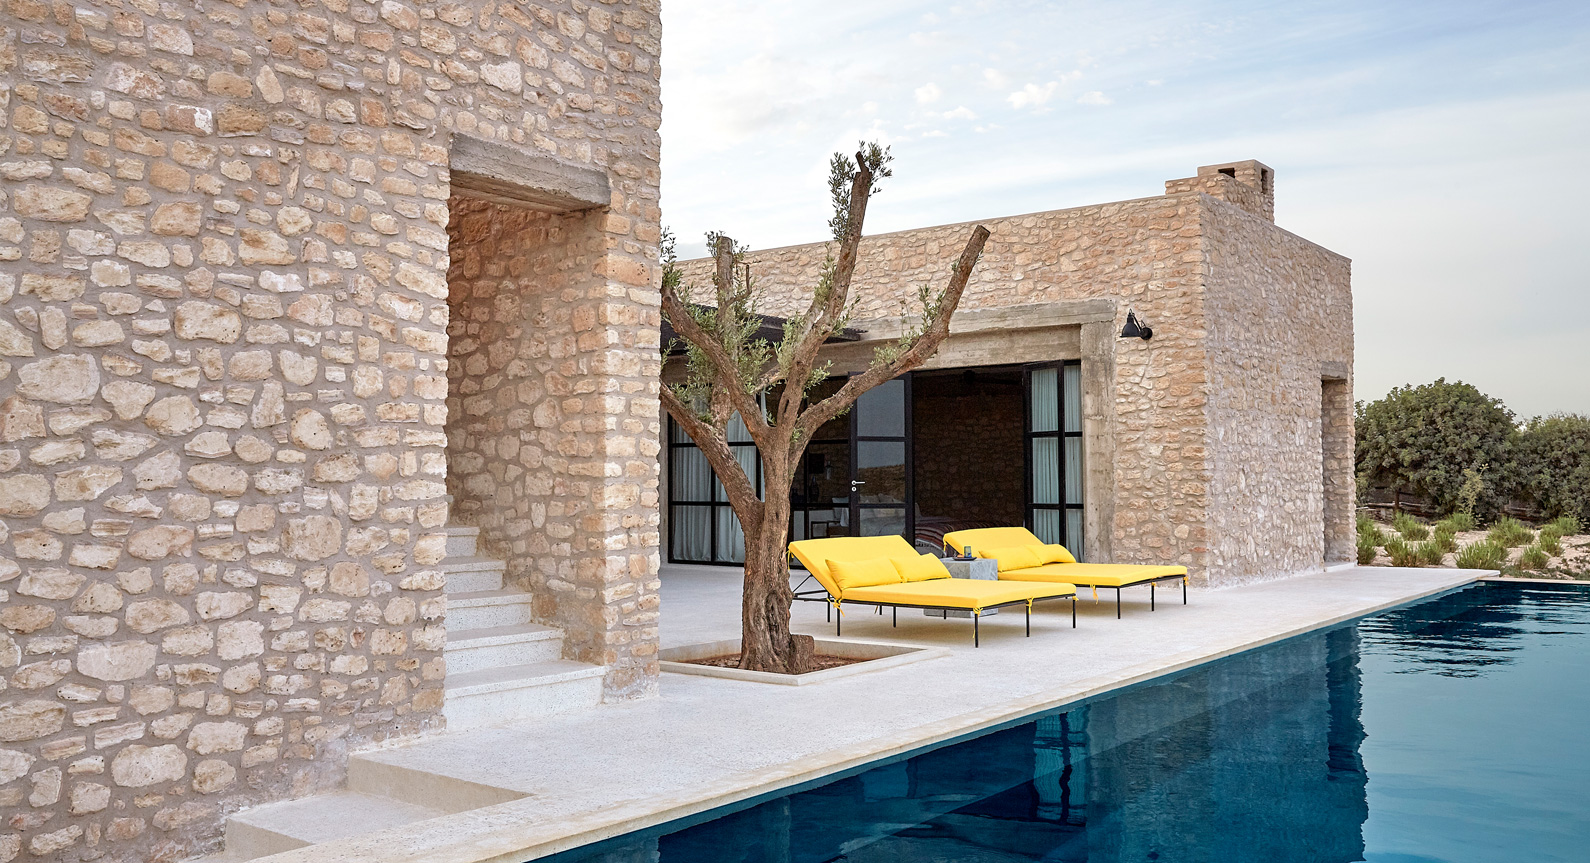 You Can Now Stay At This Secluded Hideaway In Essaouira, Morocco